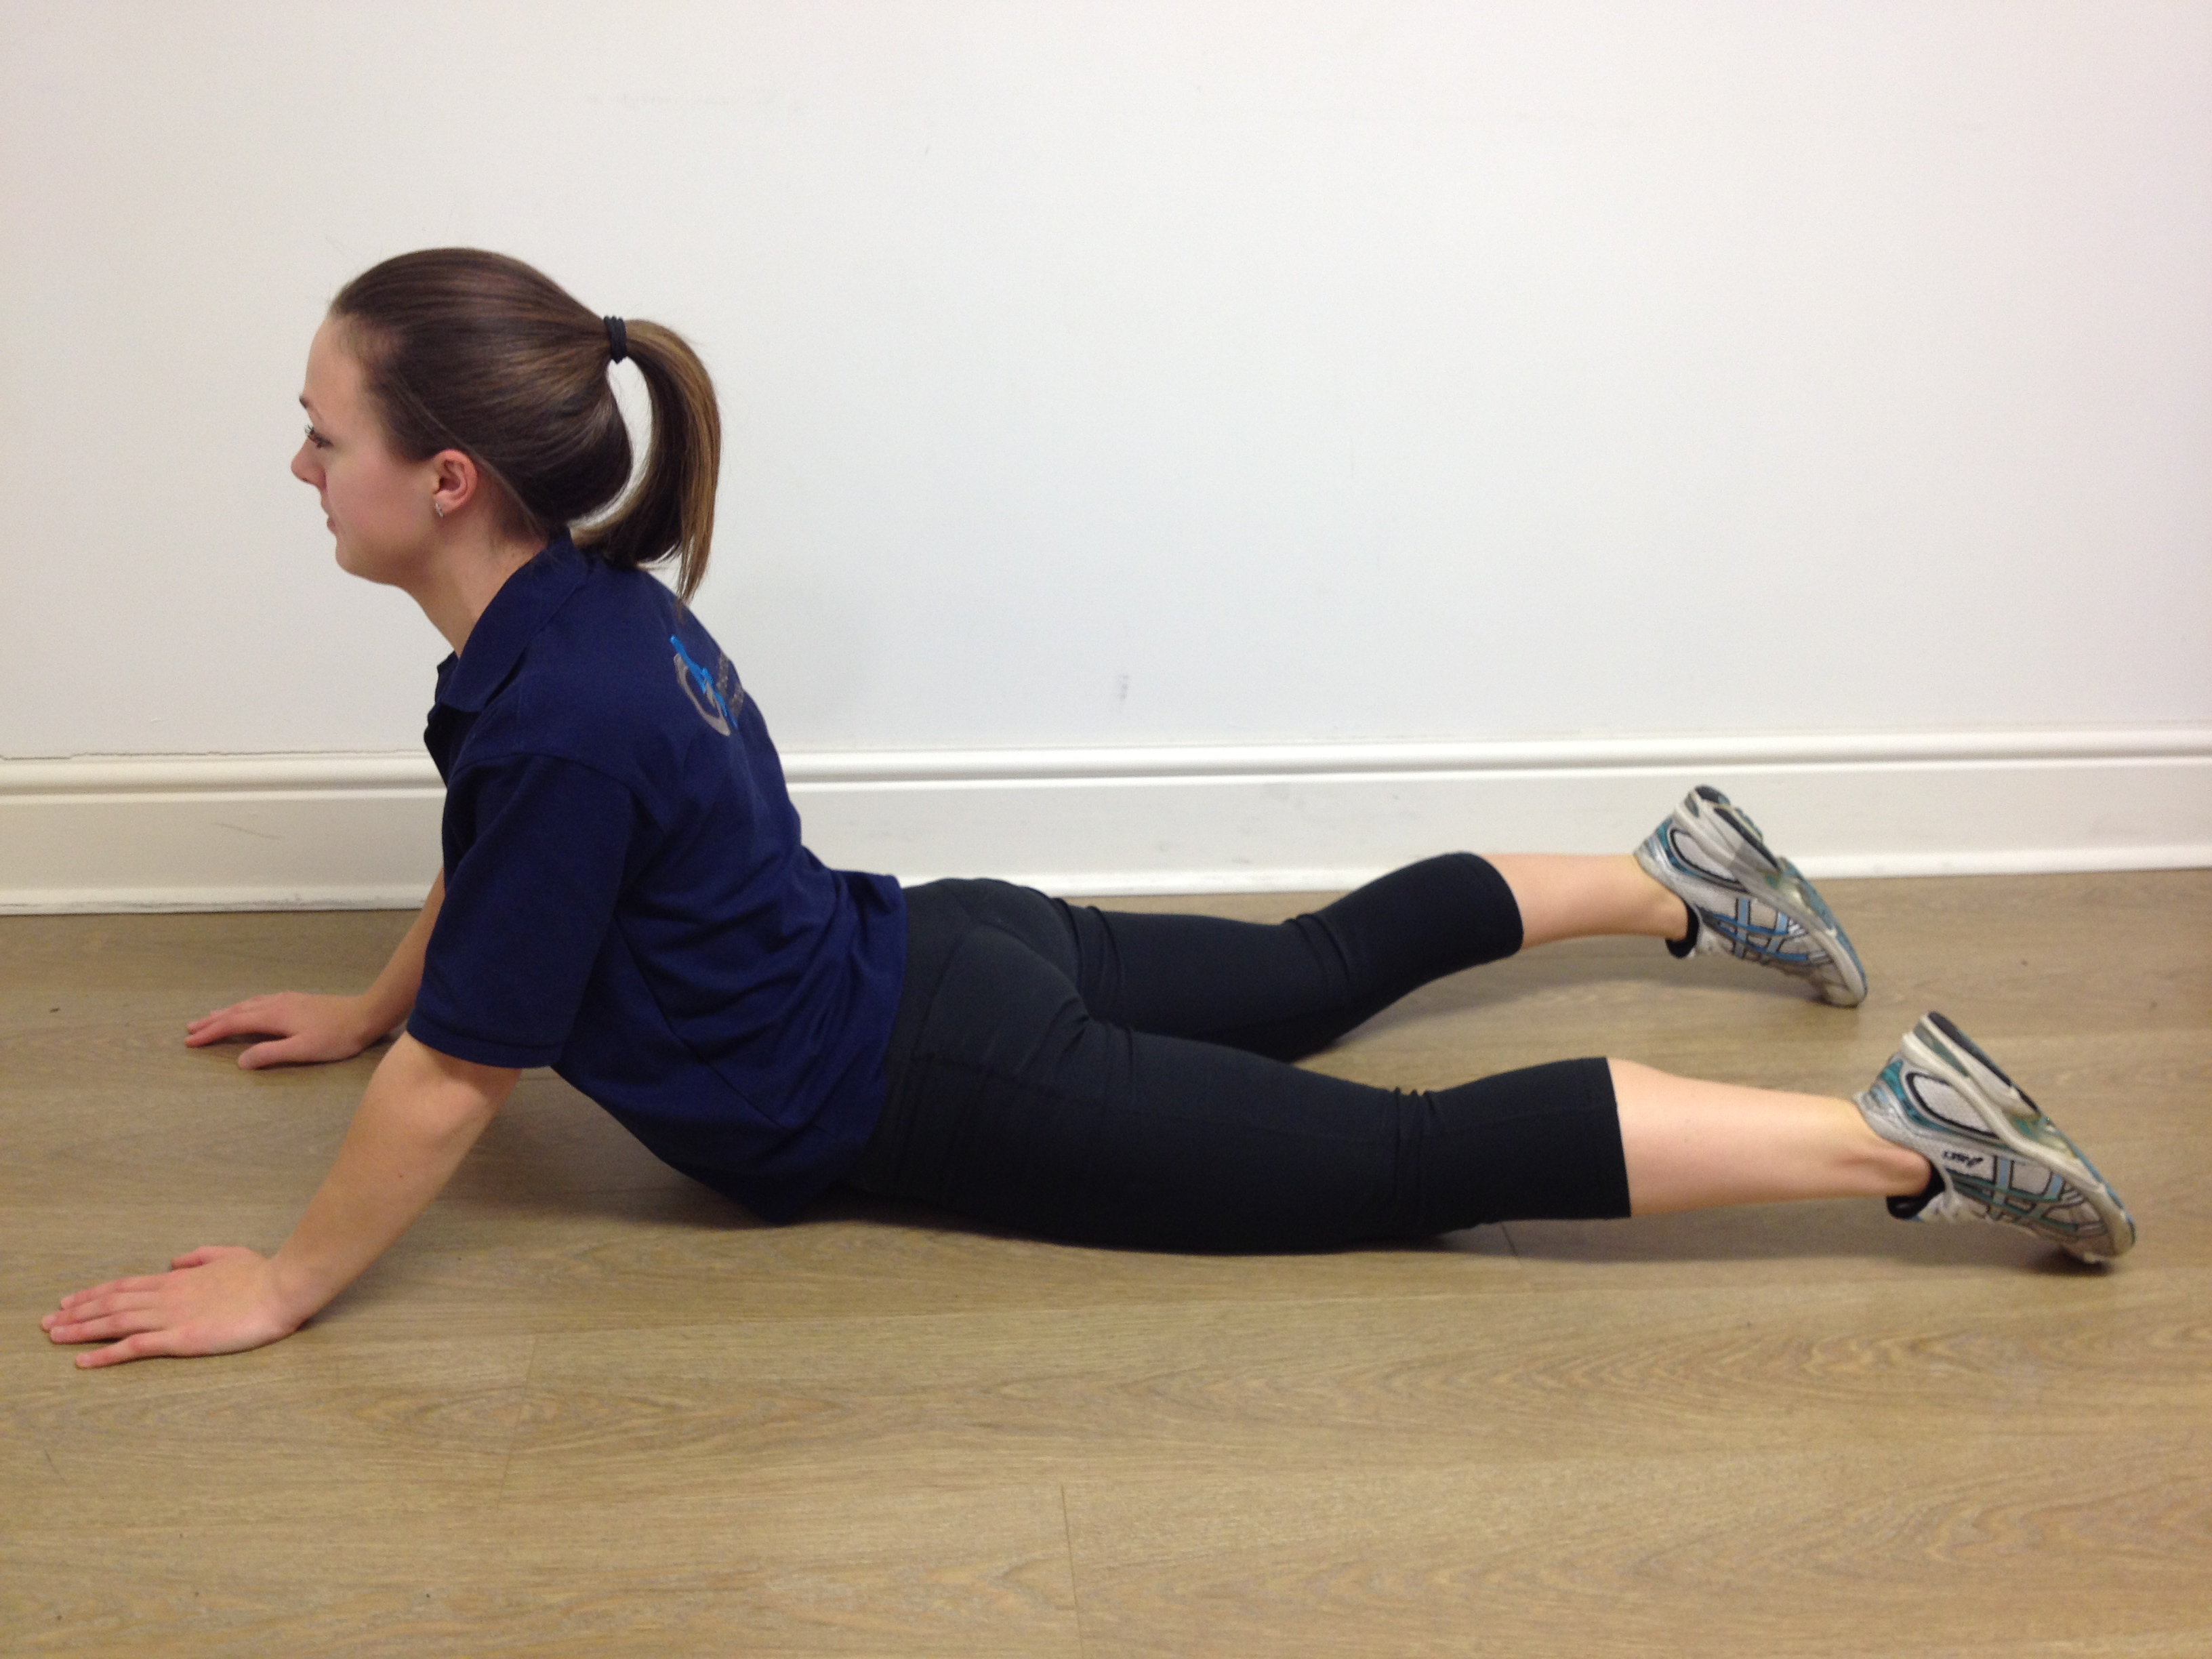 Abdominal Stretch - G4 Physiotherapy & Fitness Stretching Internal Oblique Muscle